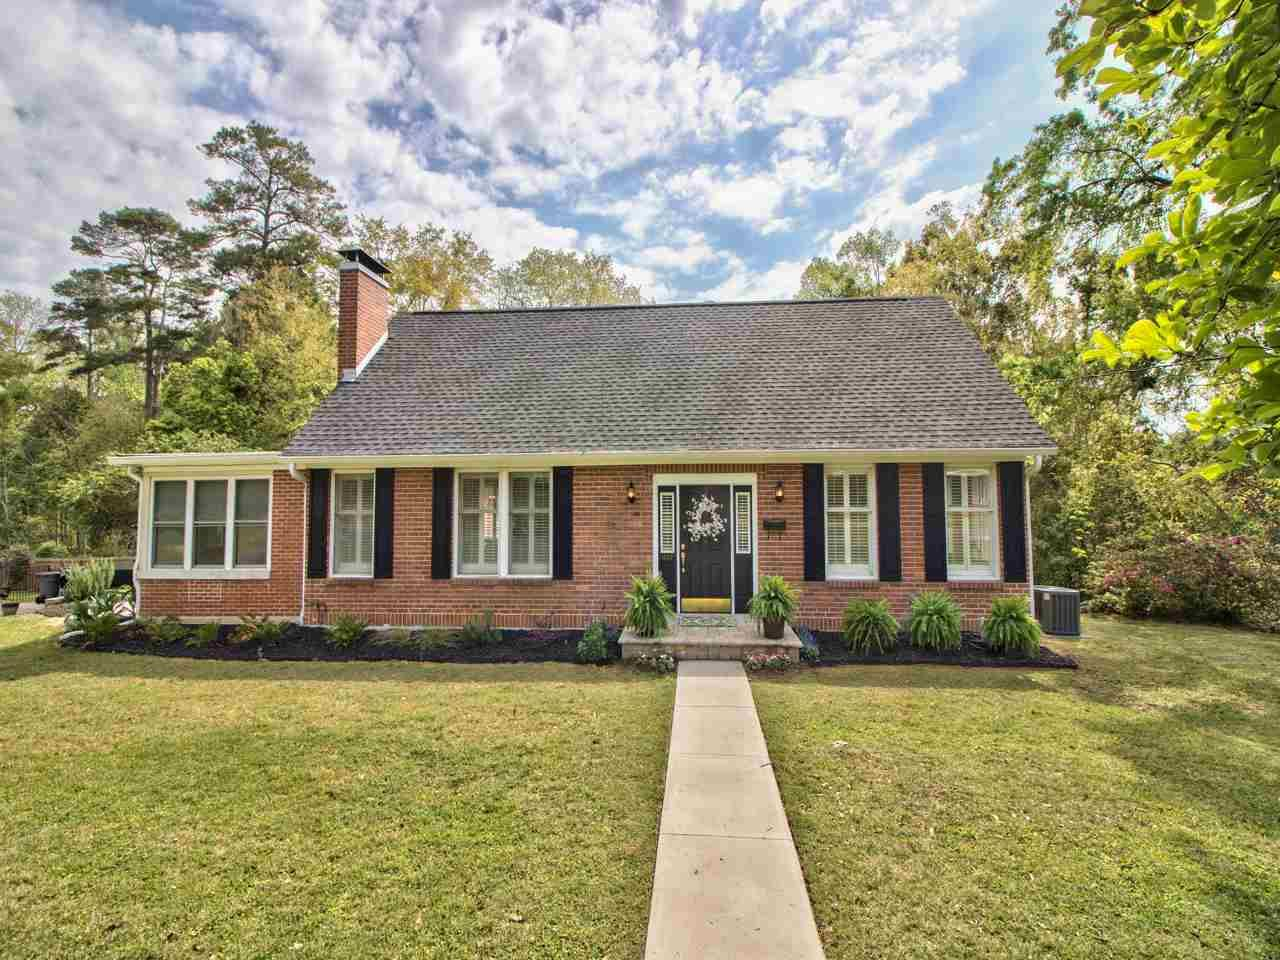 Photo of 1537 Spruce Avenue, TALLAHASSEE, FL 32303 (MLS # 317062)